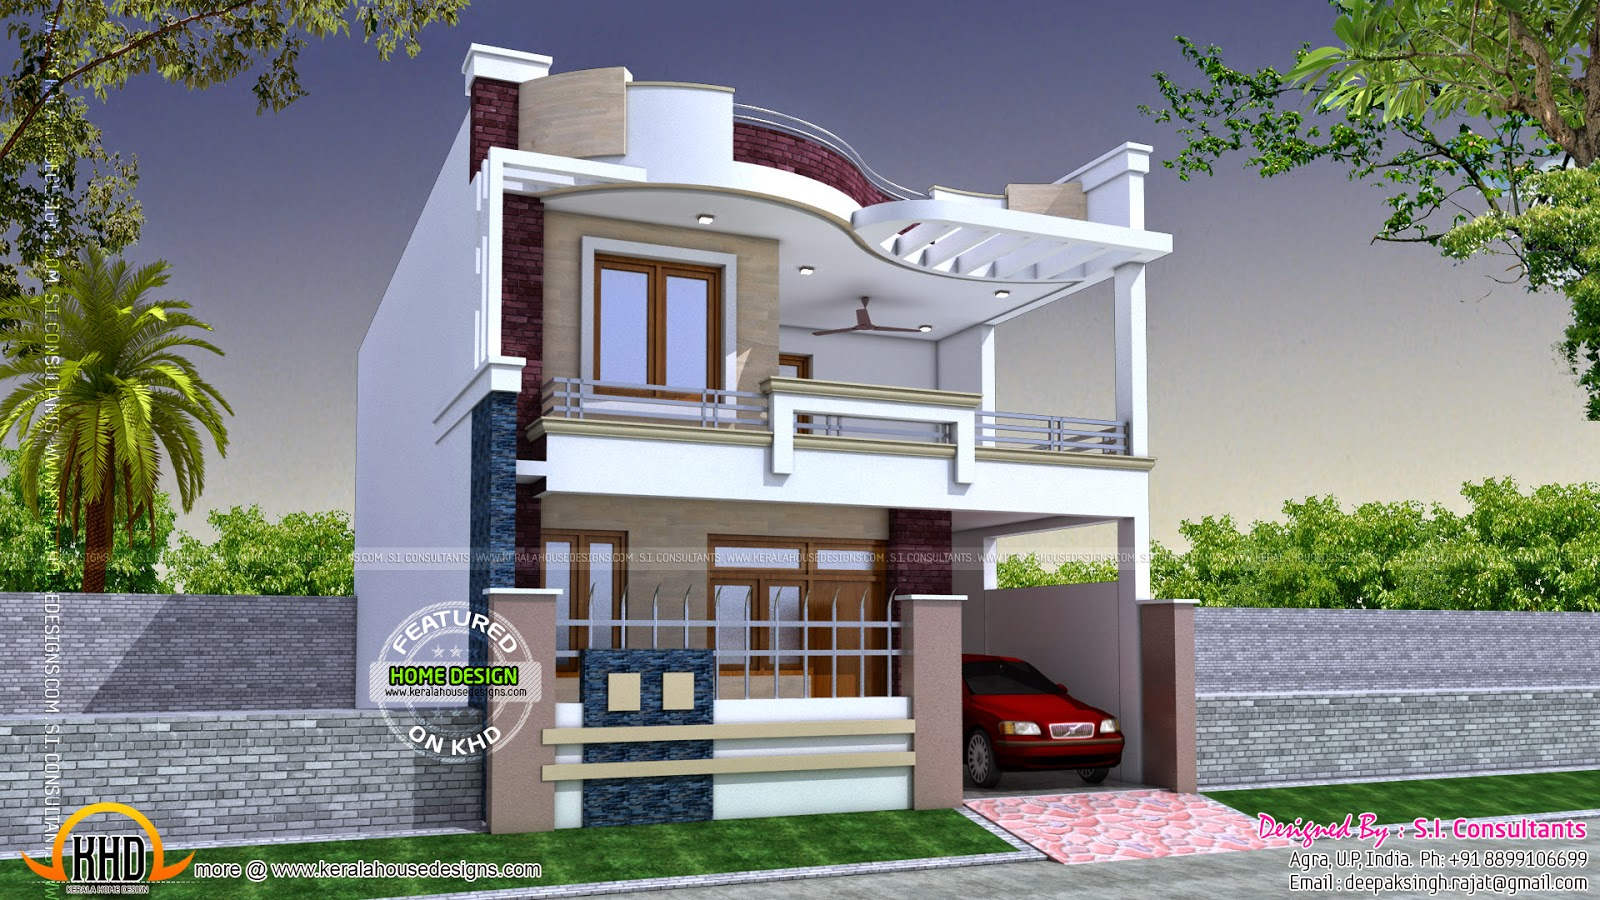 Modern indian home design kerala home design and floor plans for Indian style home plans